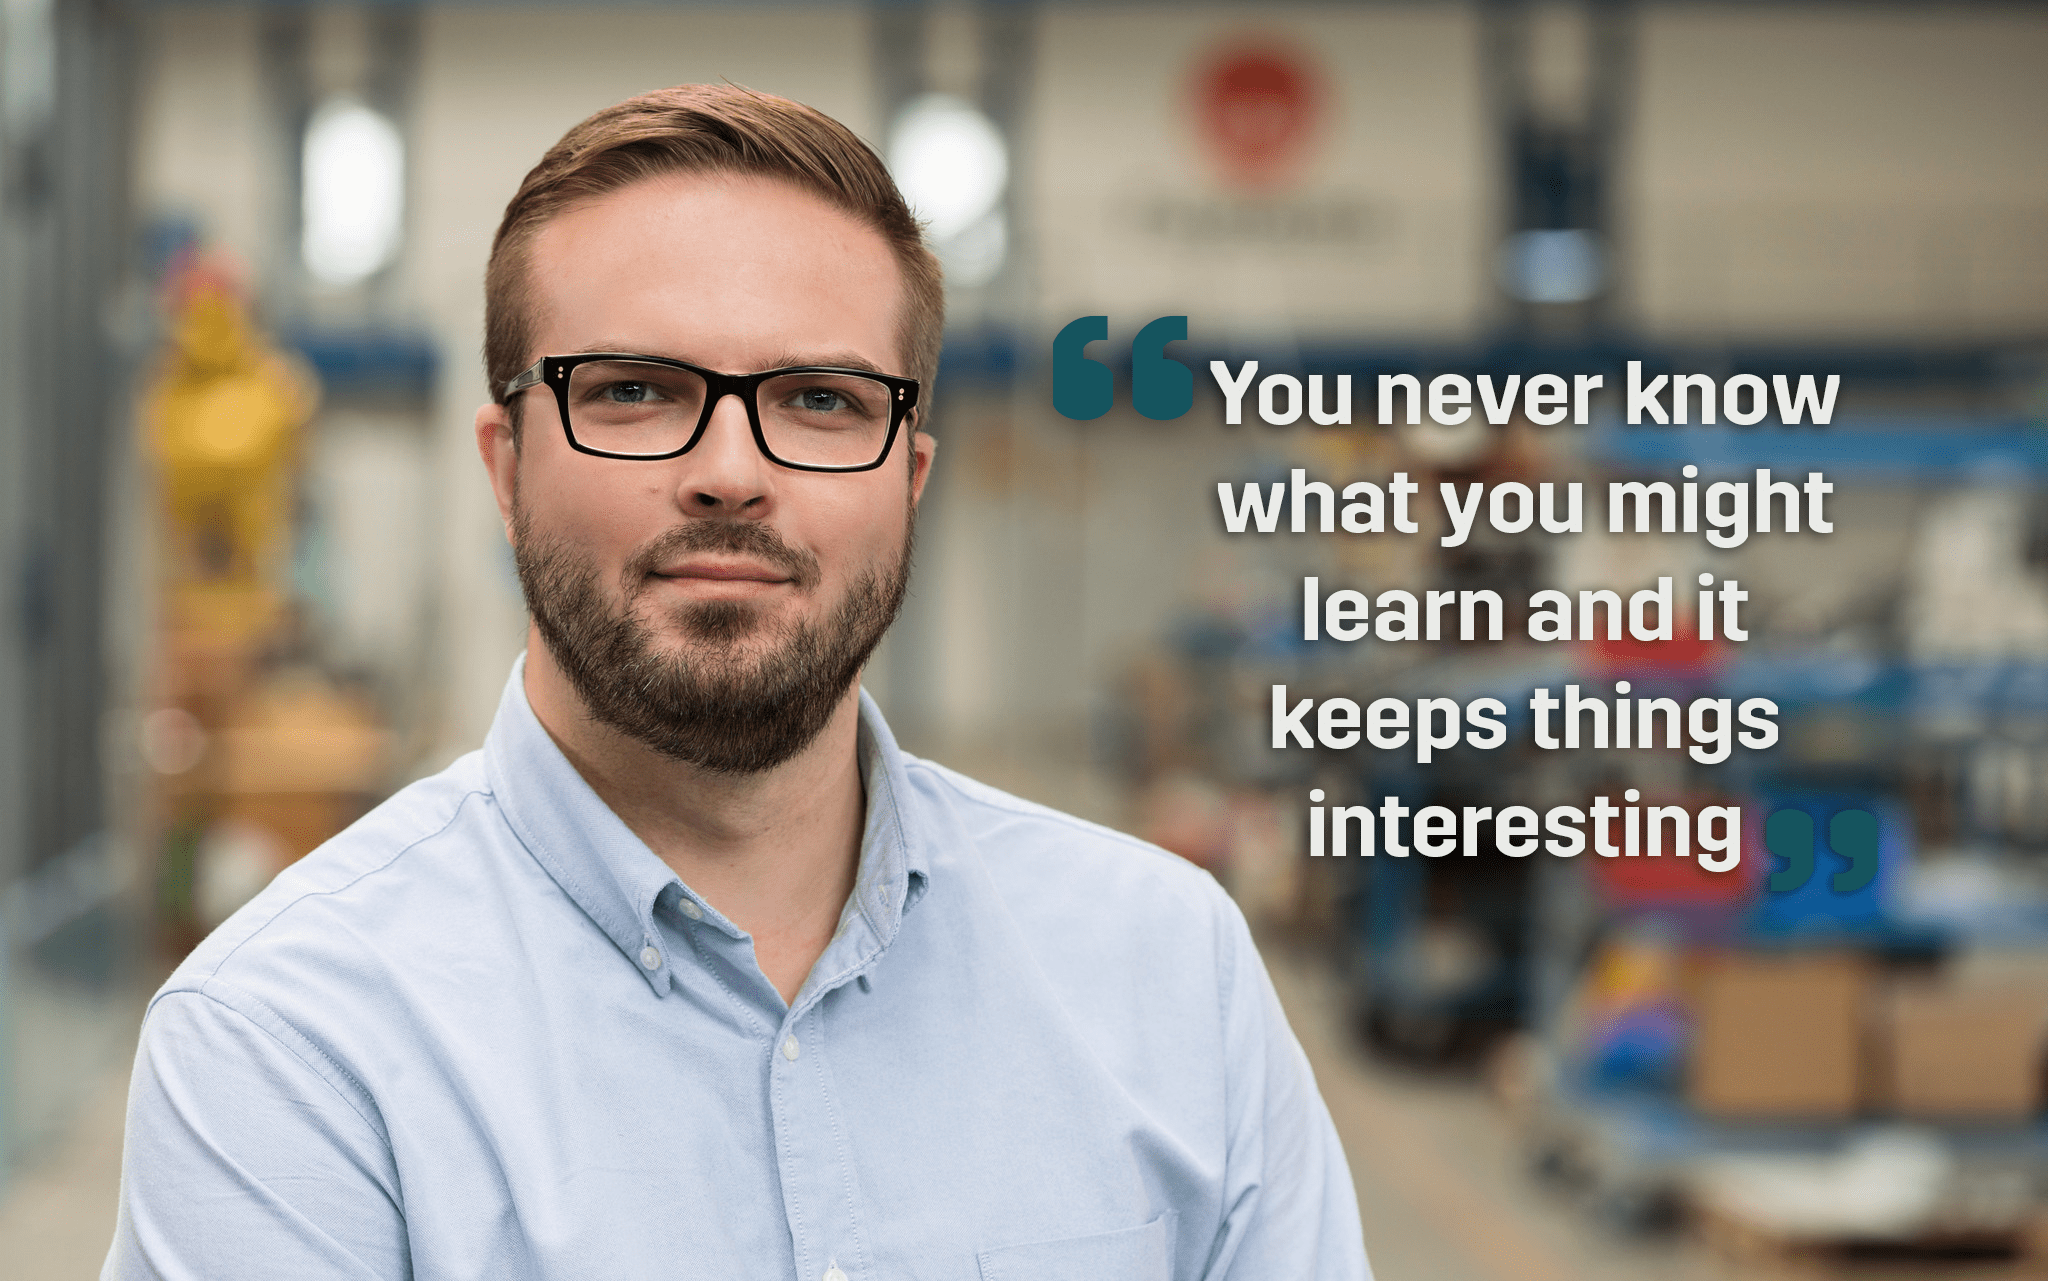 You never know what you might learn during your career at Fastems. That's what keeps manufacturing interesting.